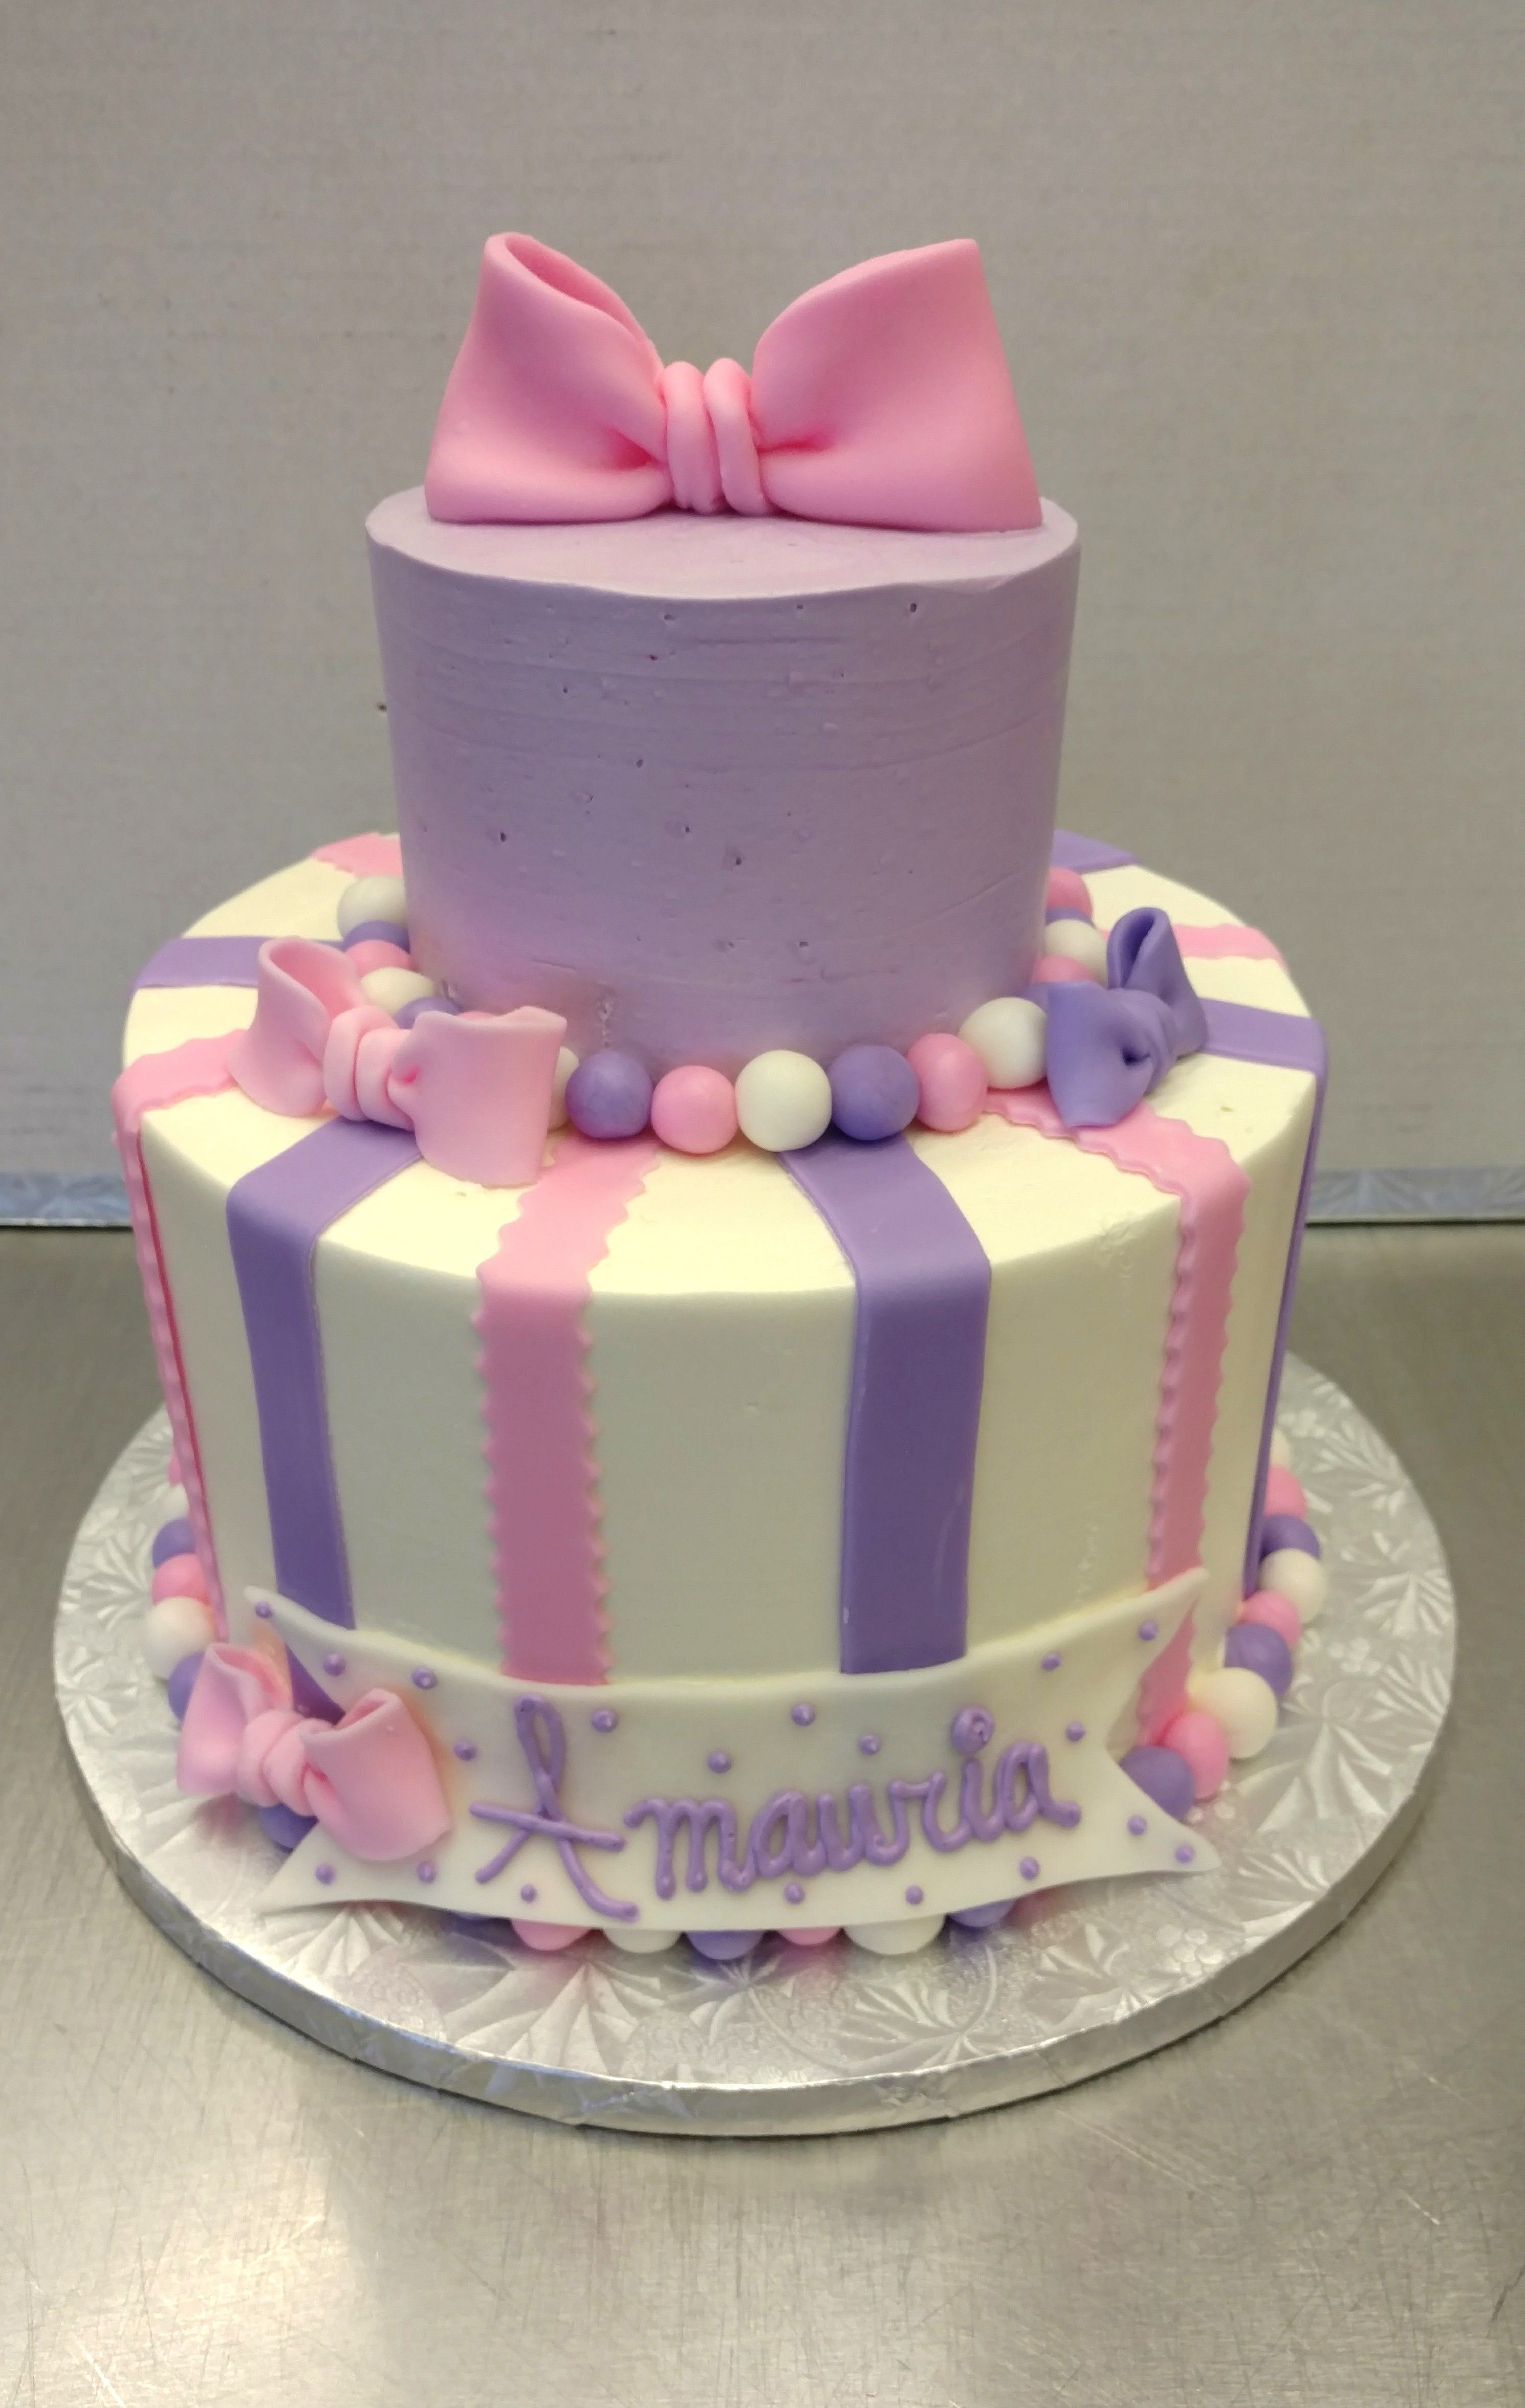 The Prettiest Cake For The Prettiest Girl Birthday Party Gourmet